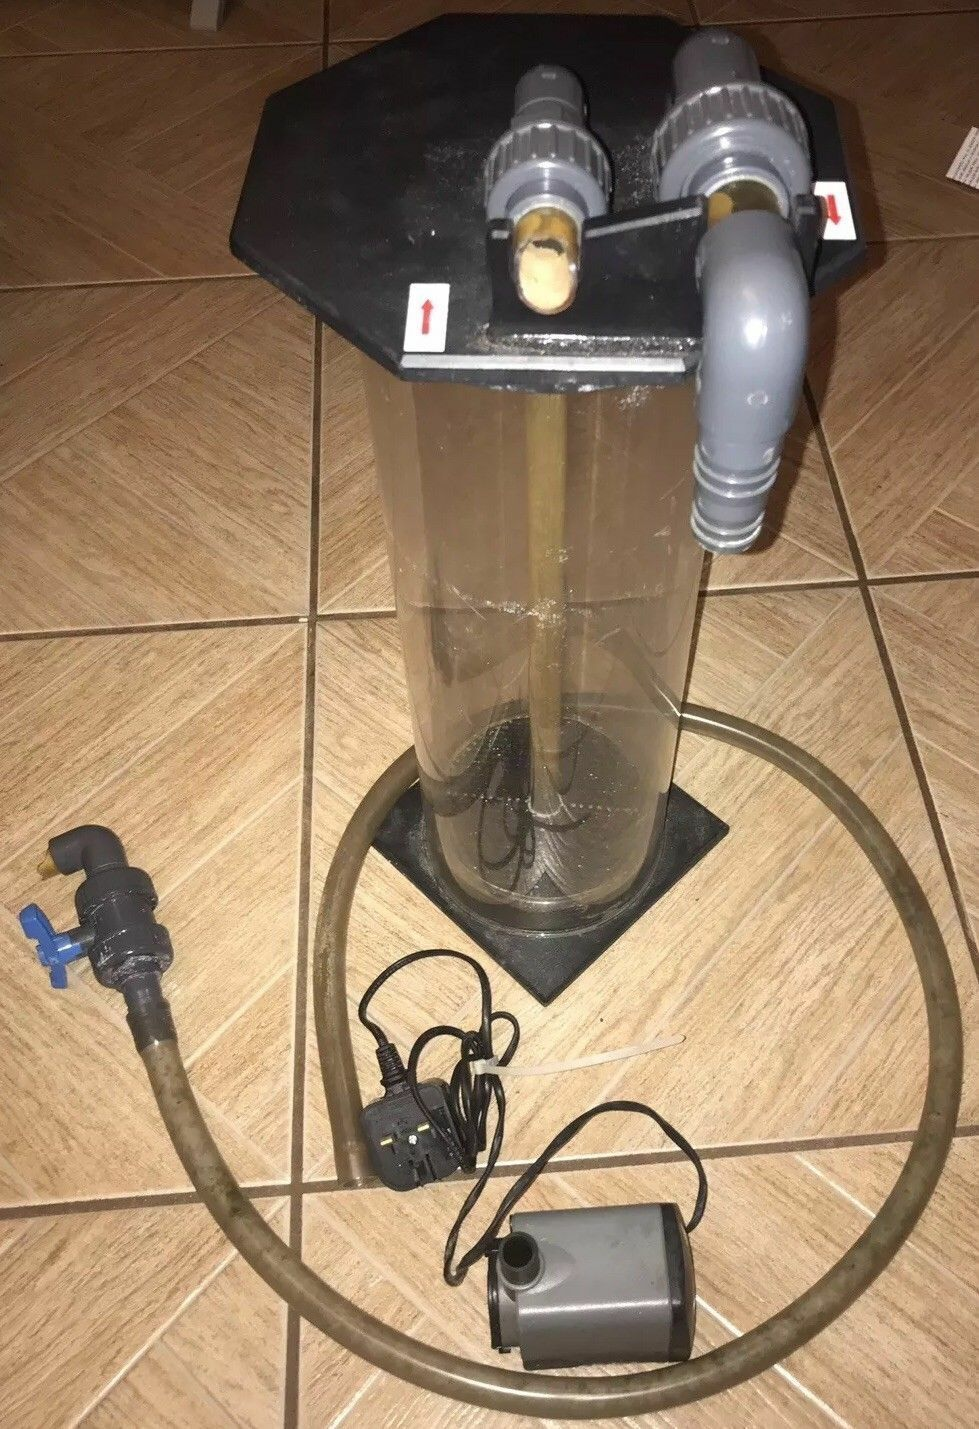 DELTEC FR512 FLUIDIZED REACTOR FOR ROWAPHOS CARBON IN MARINE FISH TANK